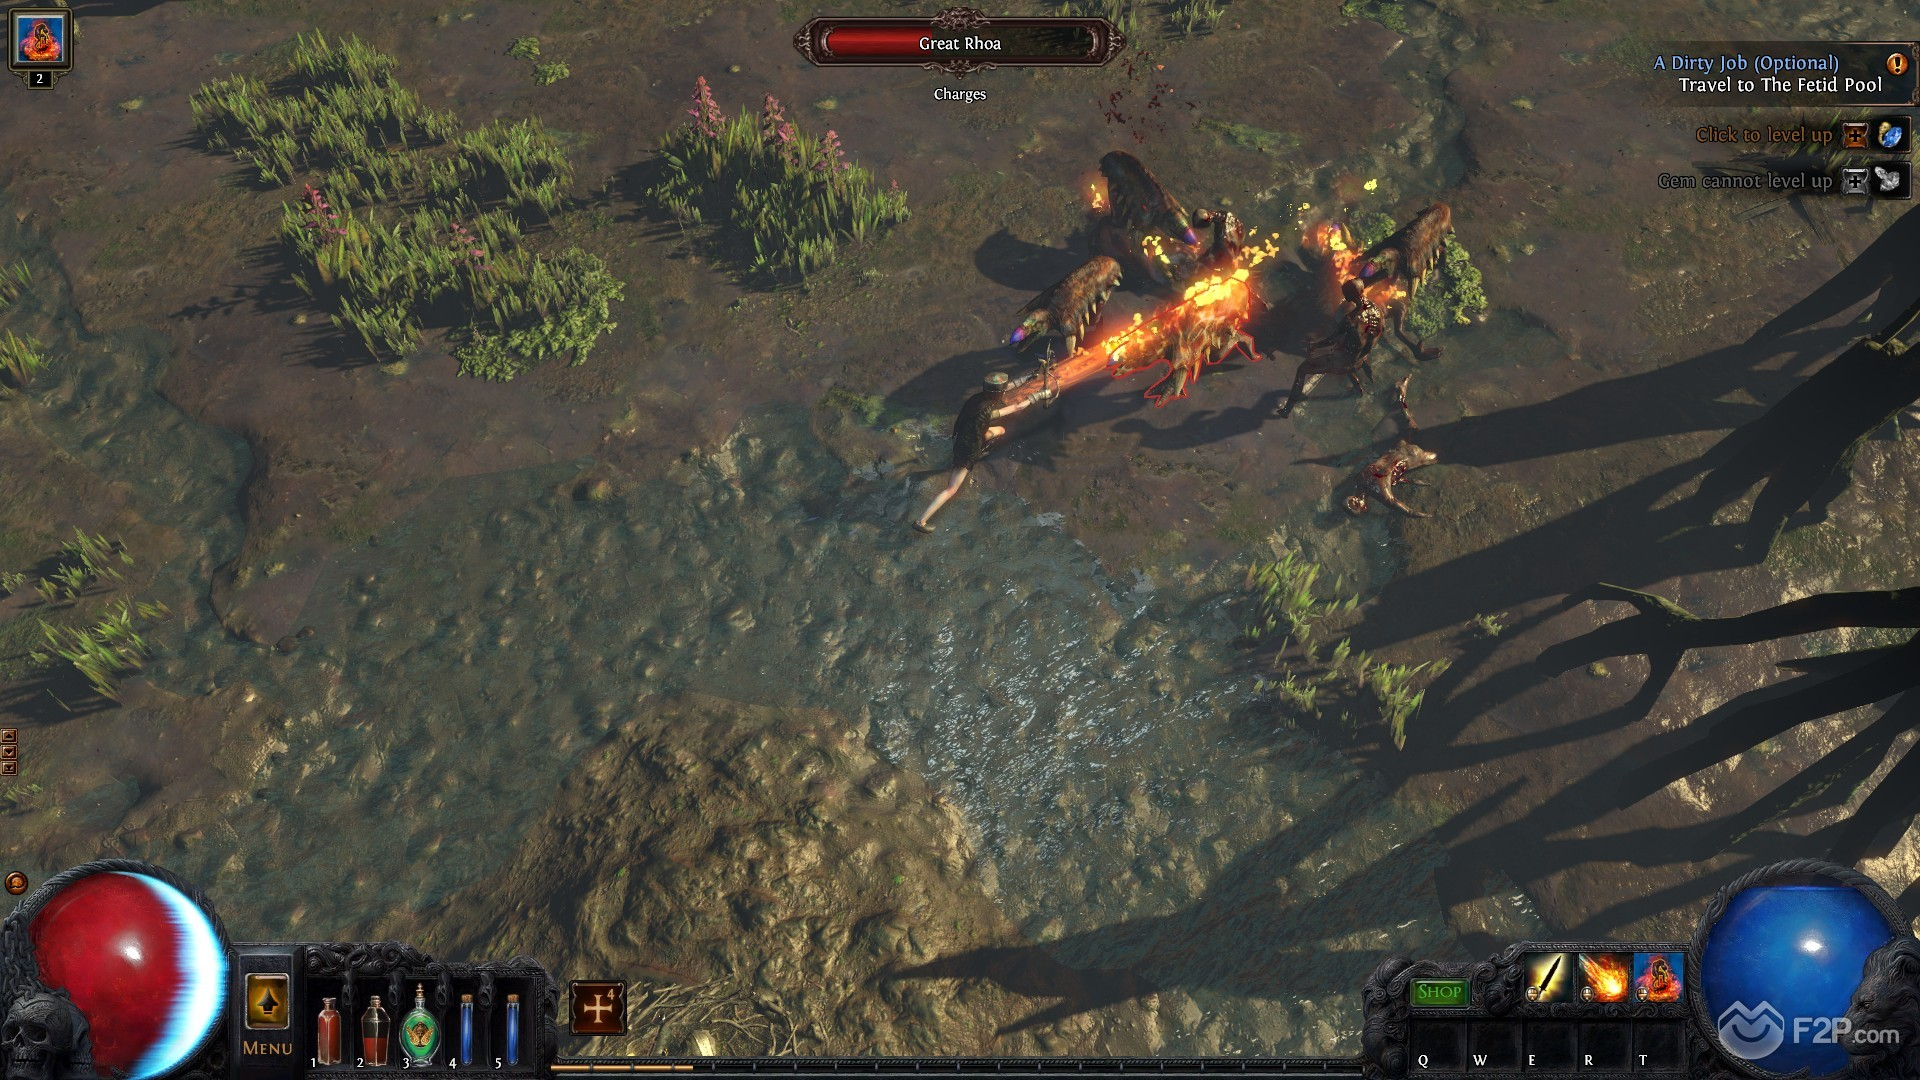 a review of the first impressions of steedmans exiles Continue reading path of exile war for the atlas and abyss challenge league first impressions → reviews abyss challenge league first impressions search for: search recent posts path of exile war.